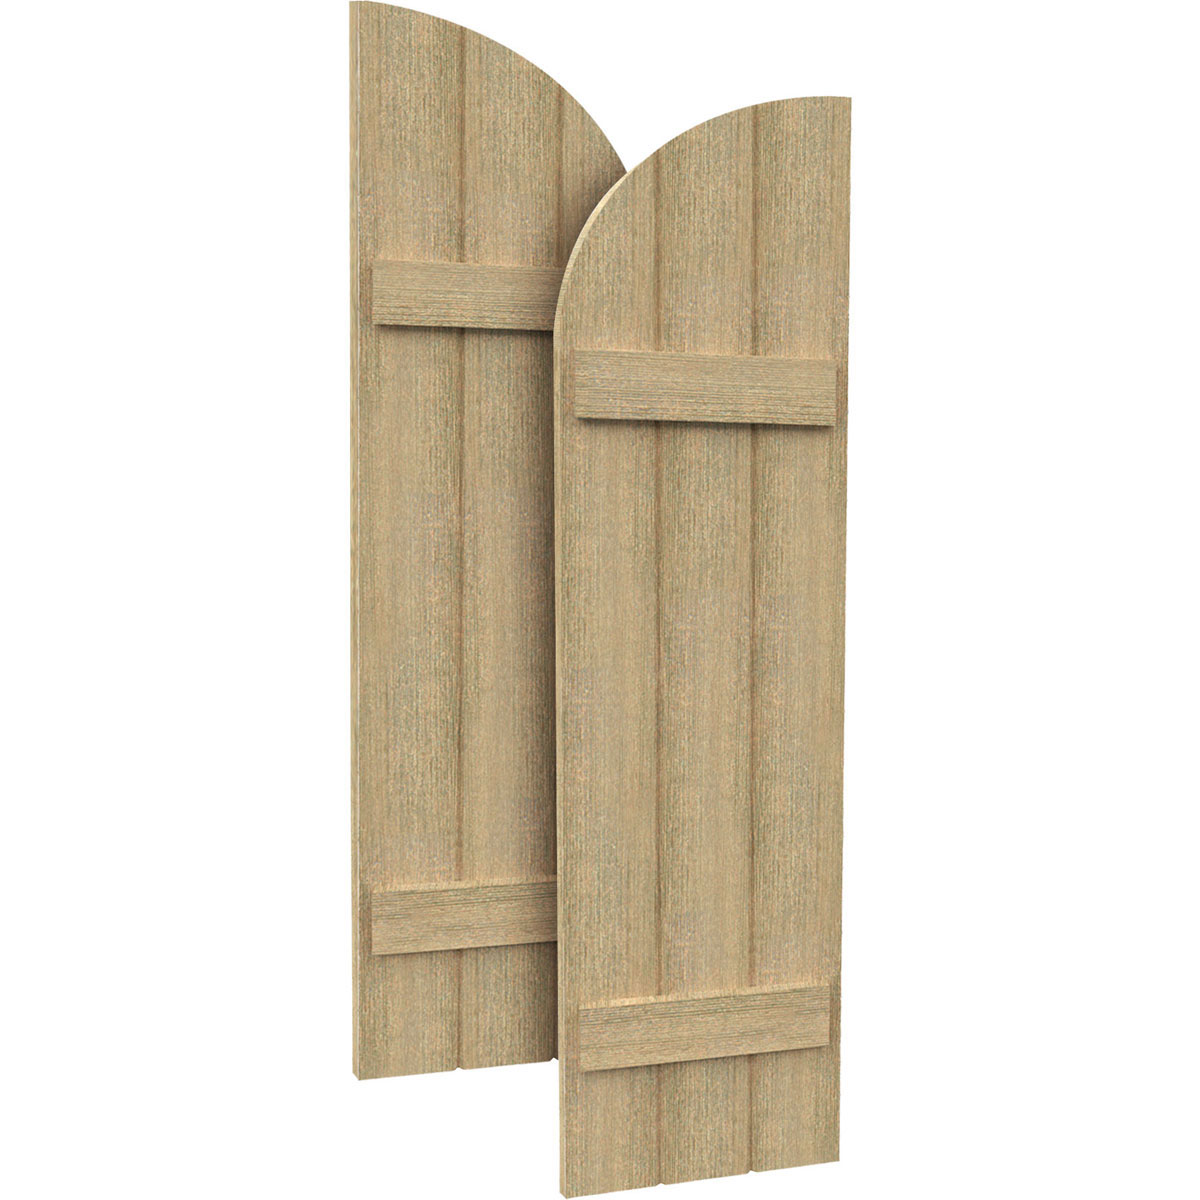 Fypon ltd sh3phlr 3 boards w quarter round arch top and 2 for Fypon exterior shutters